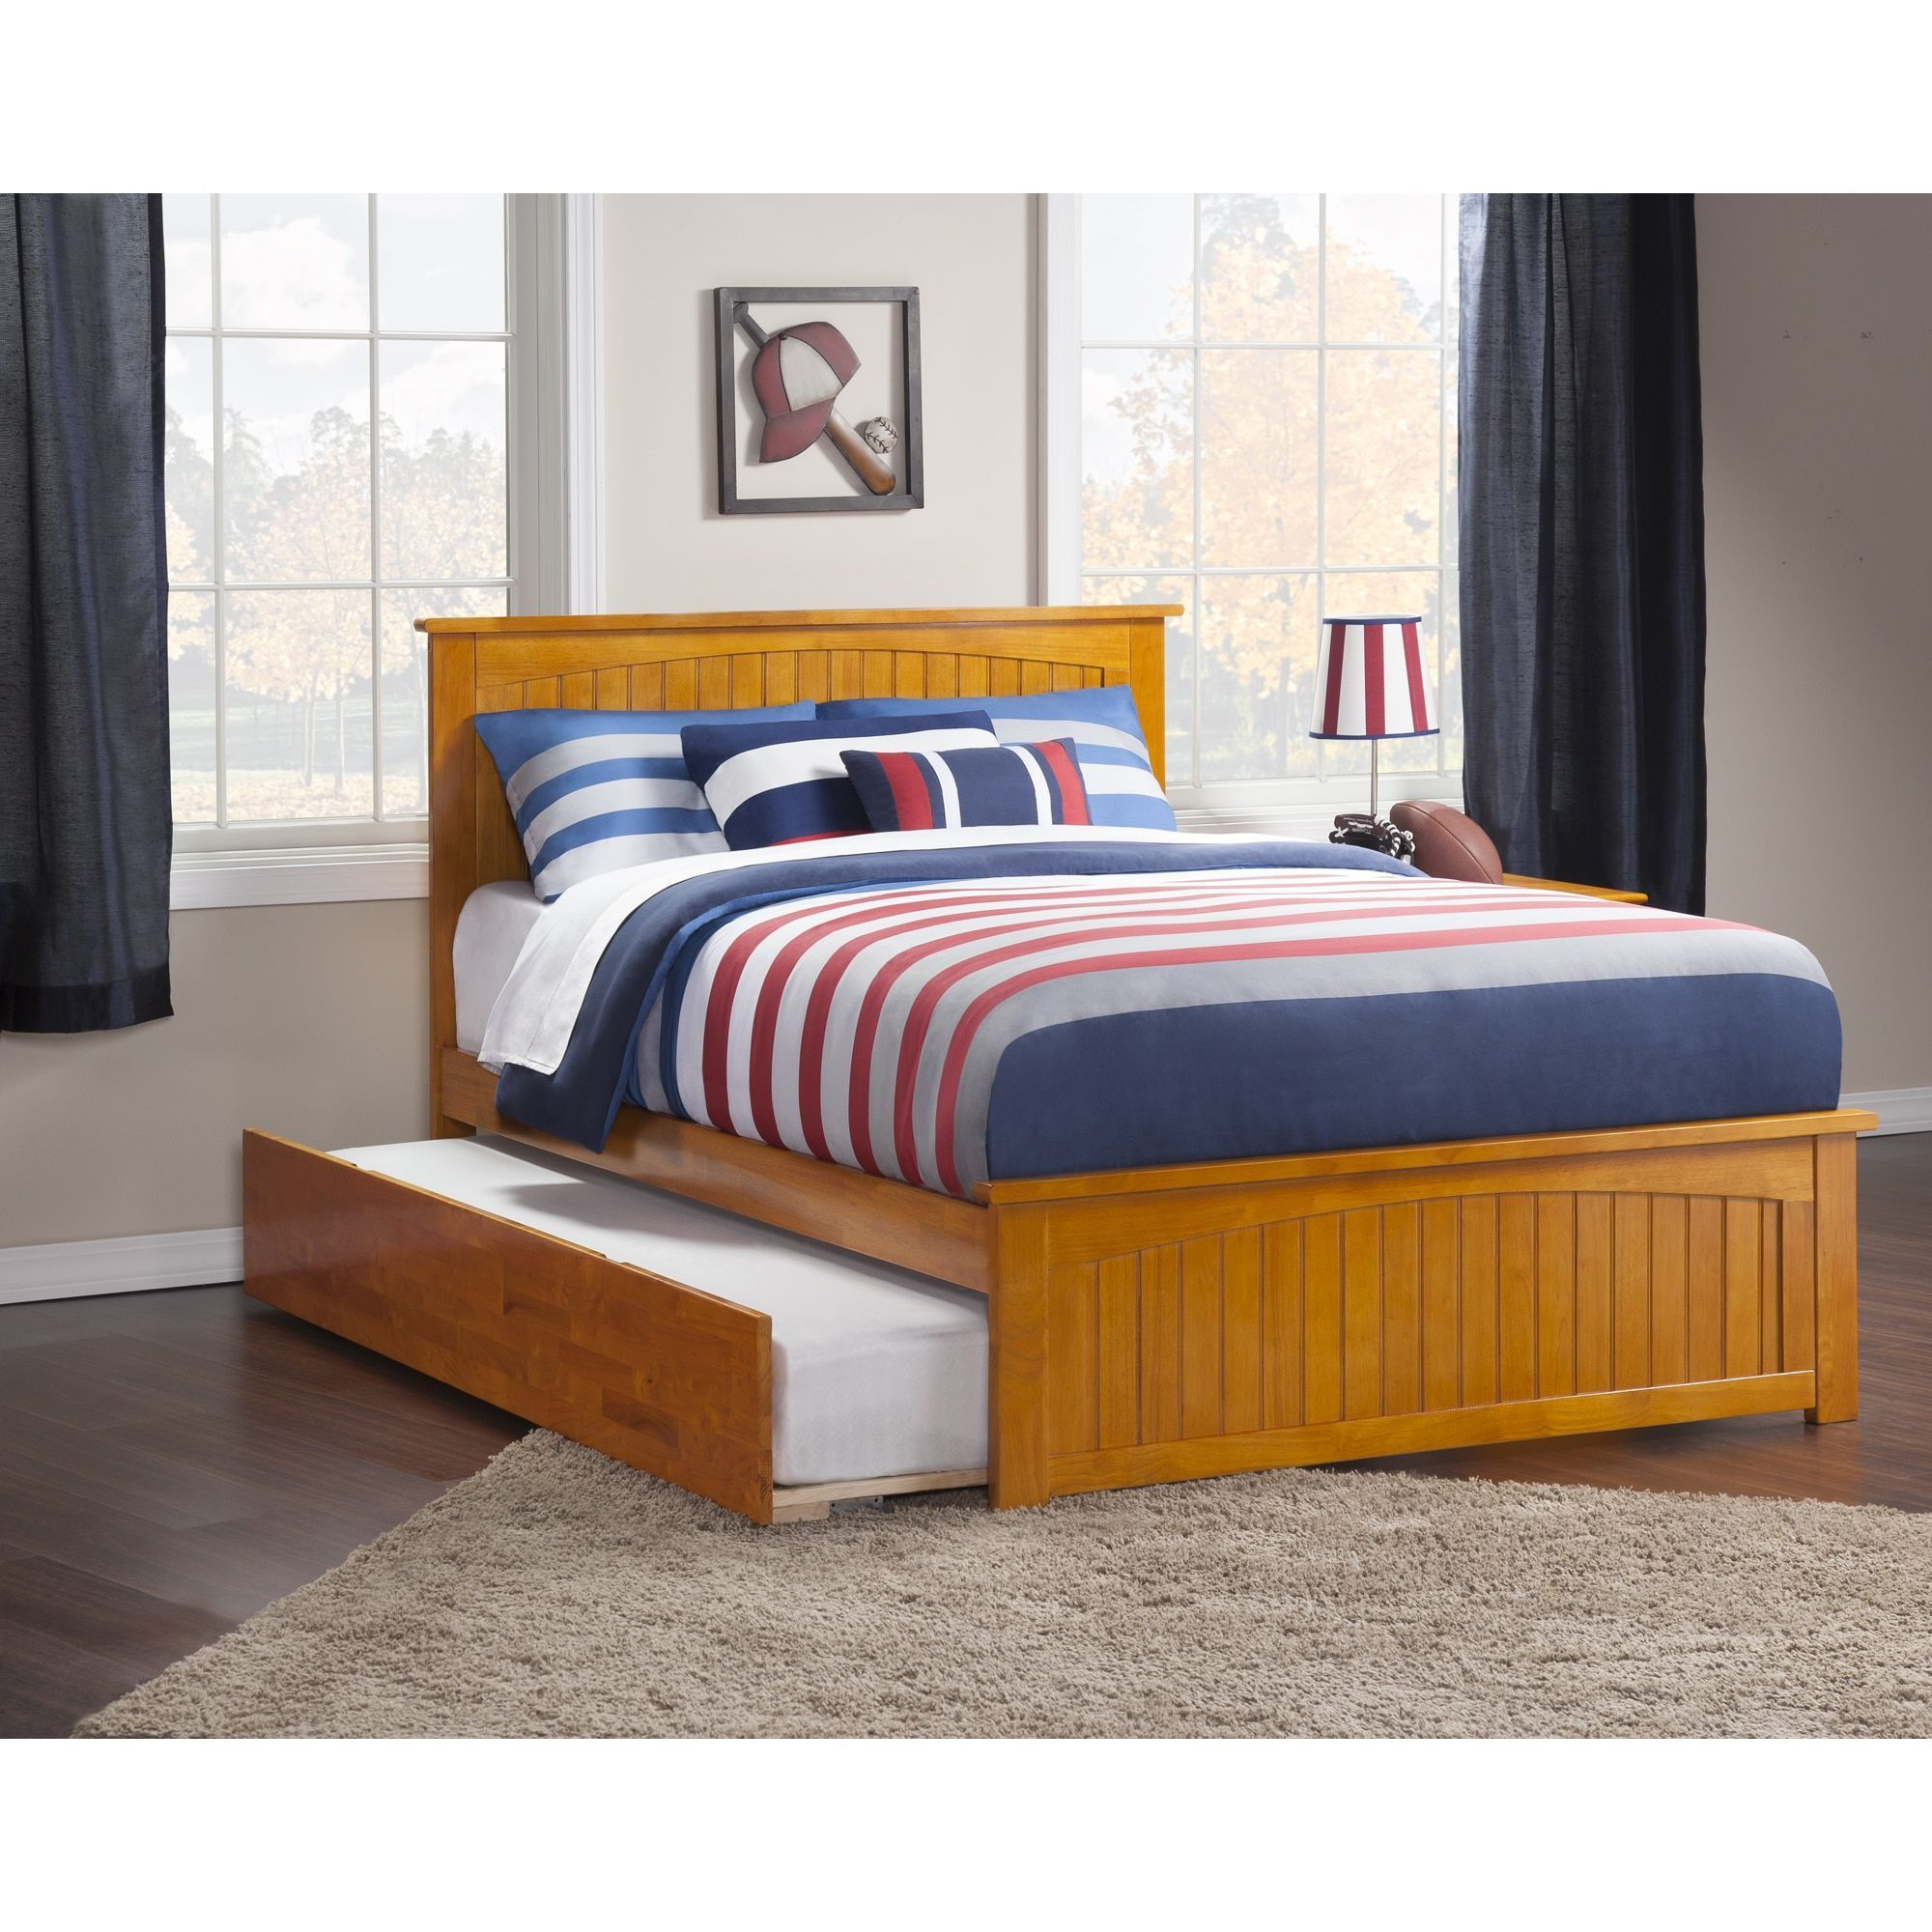 bc16cd570d2ce Atlantic Nantucket Caramel Latte Full Bed with Matching Footboard and Urban  Trundle Bed (Size)